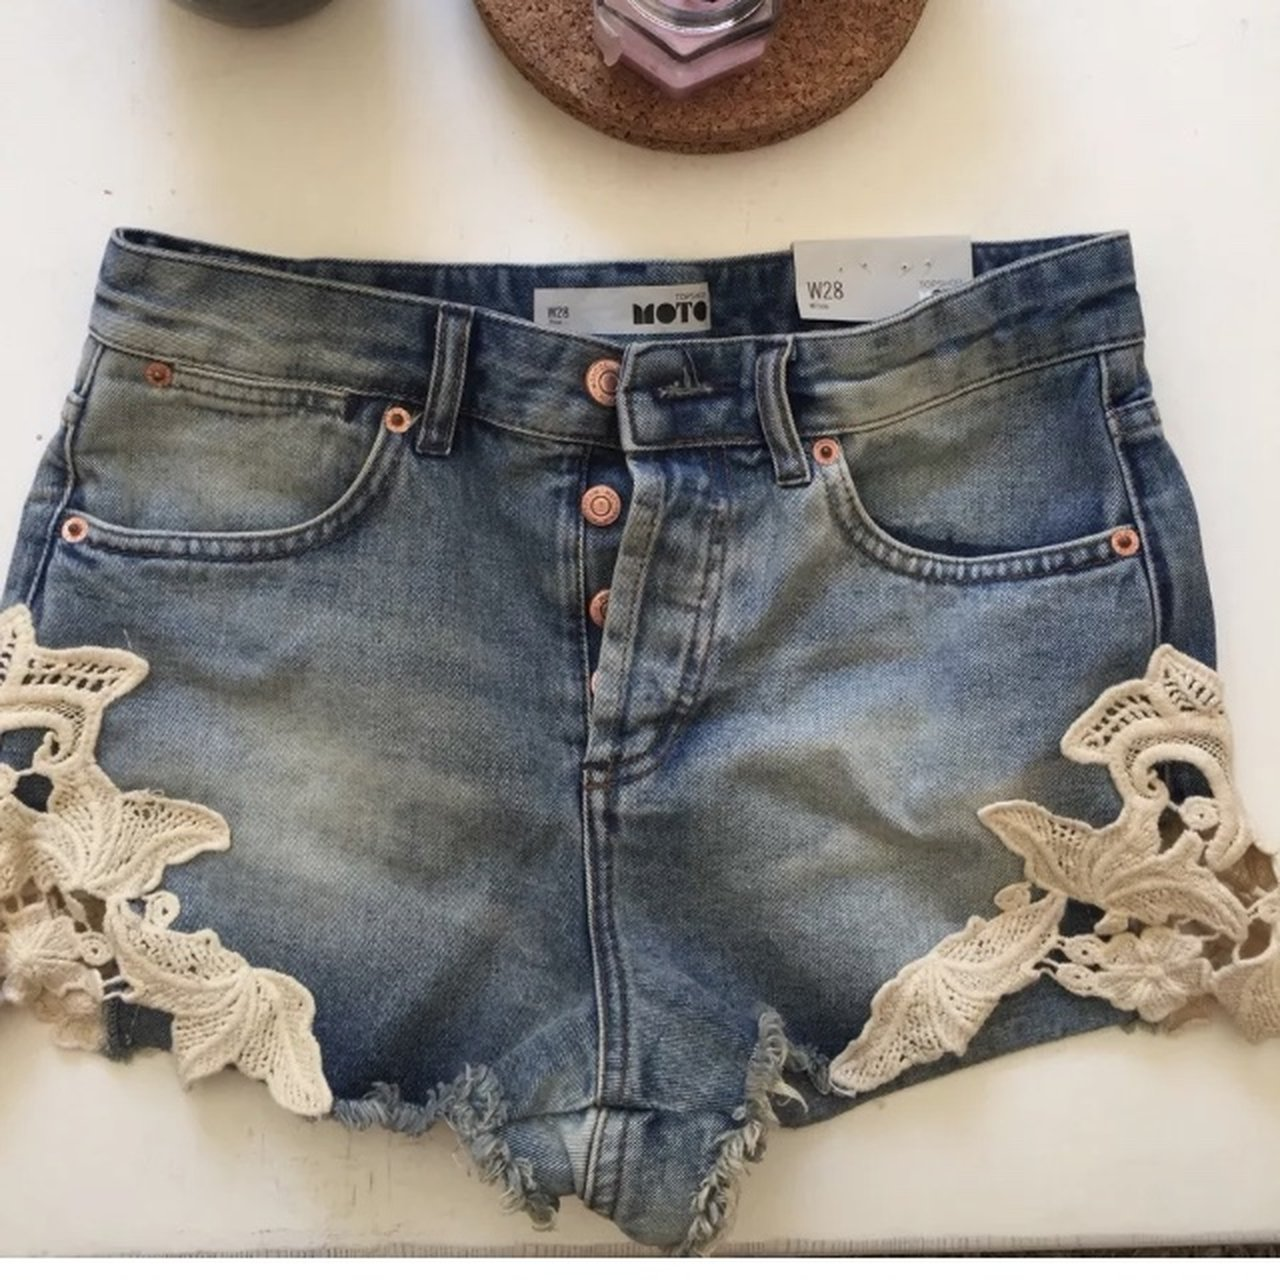 a975295fe6 Topshop denim shorts with lace detail brand new come up a 10 - Depop